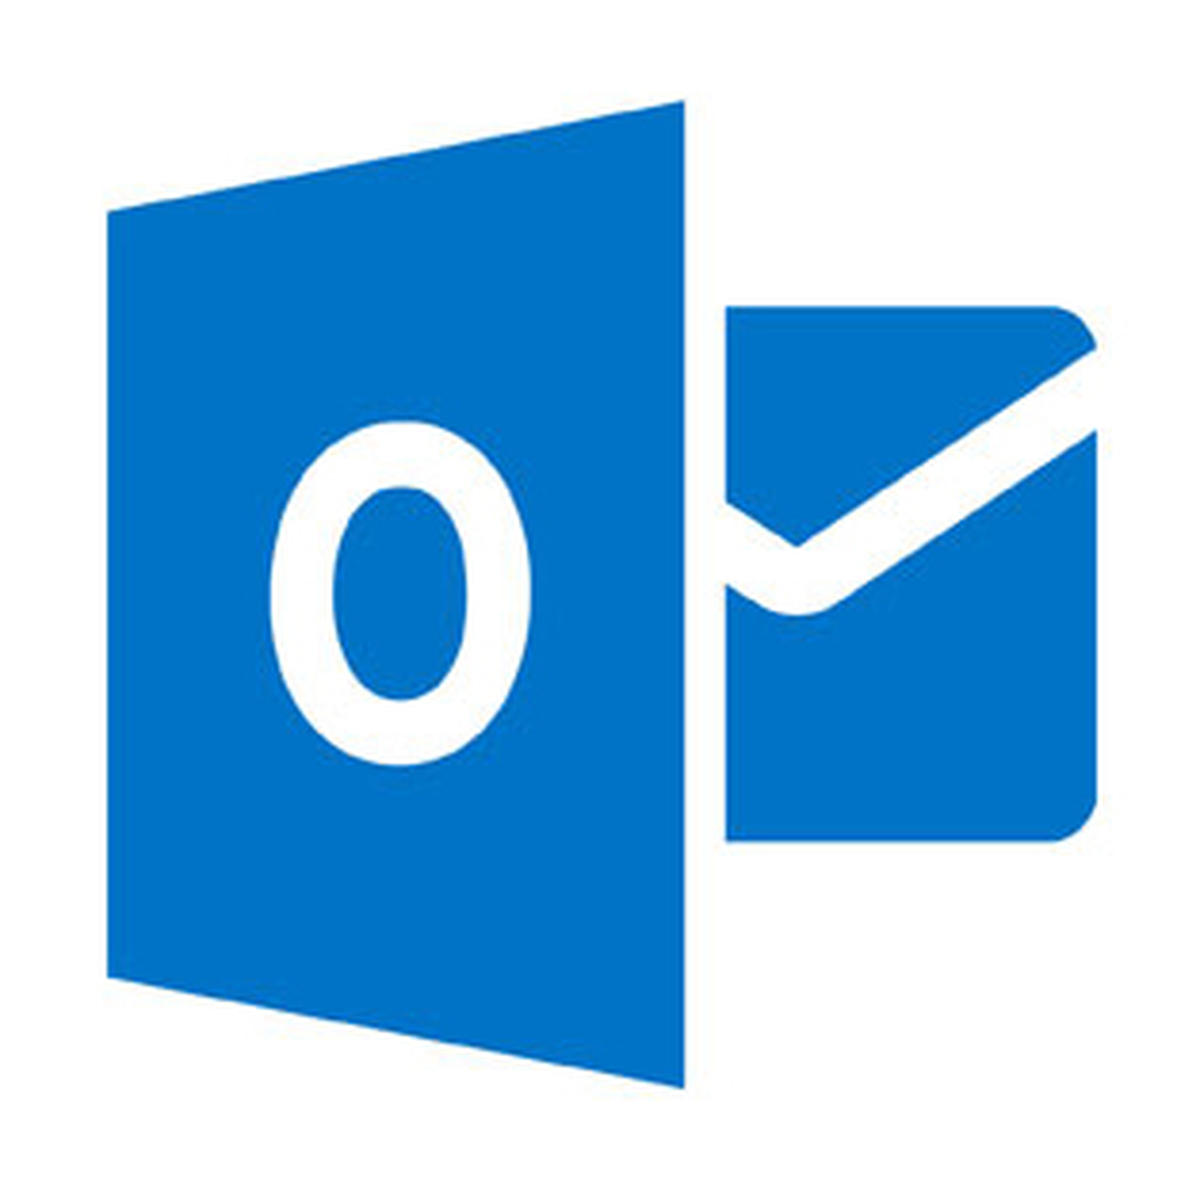 Outlook_thumb_090913.jpg